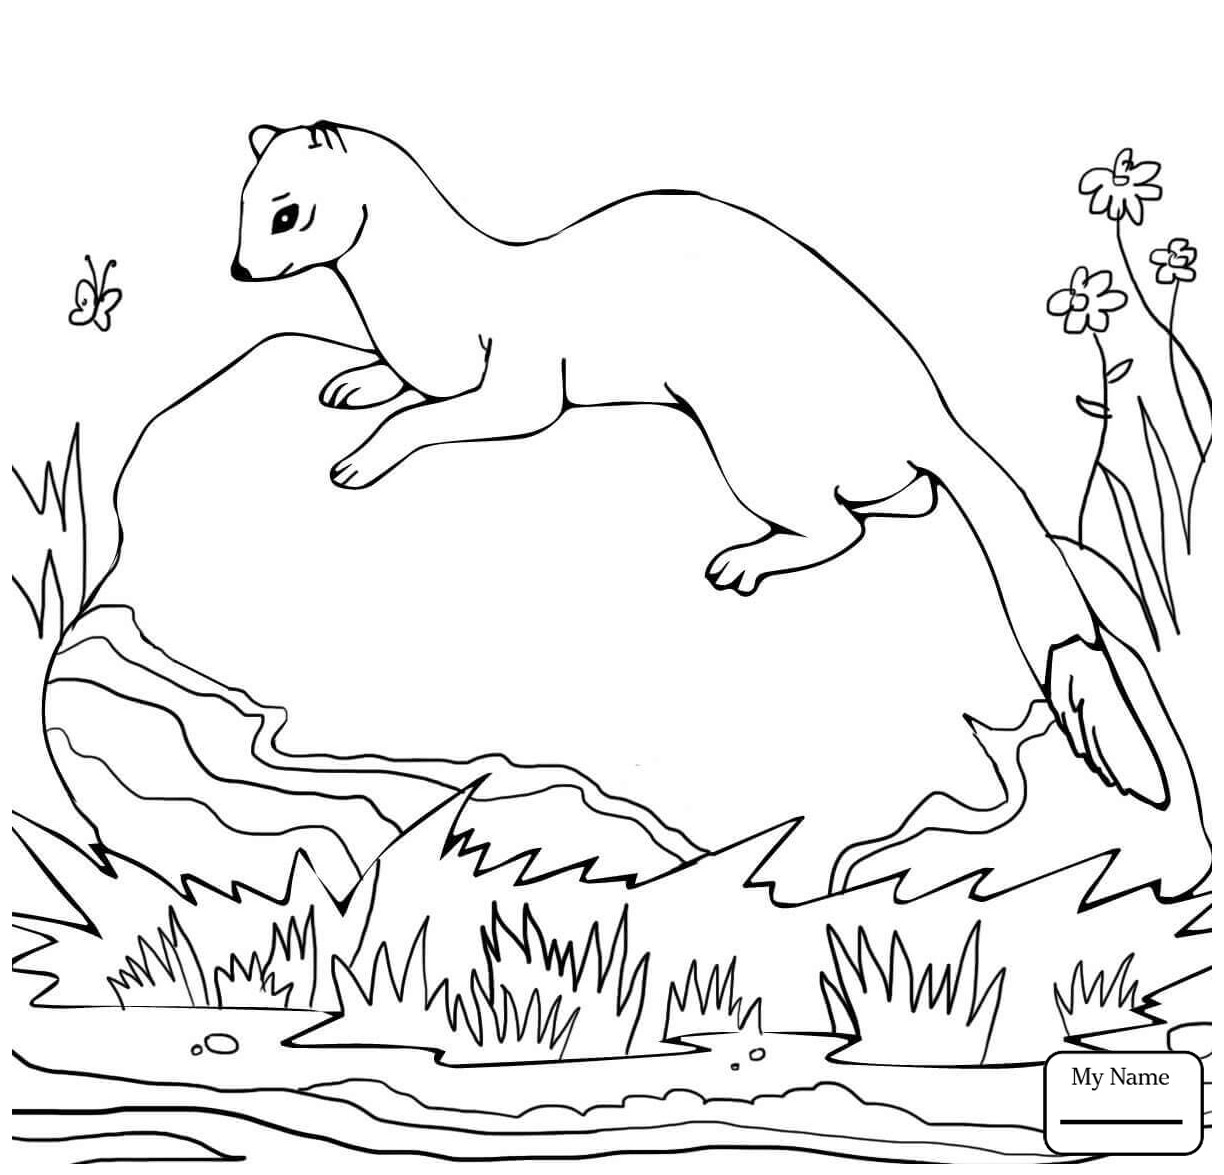 ferret coloring pages ferret coloring pages coloring pages to download and print coloring ferret pages